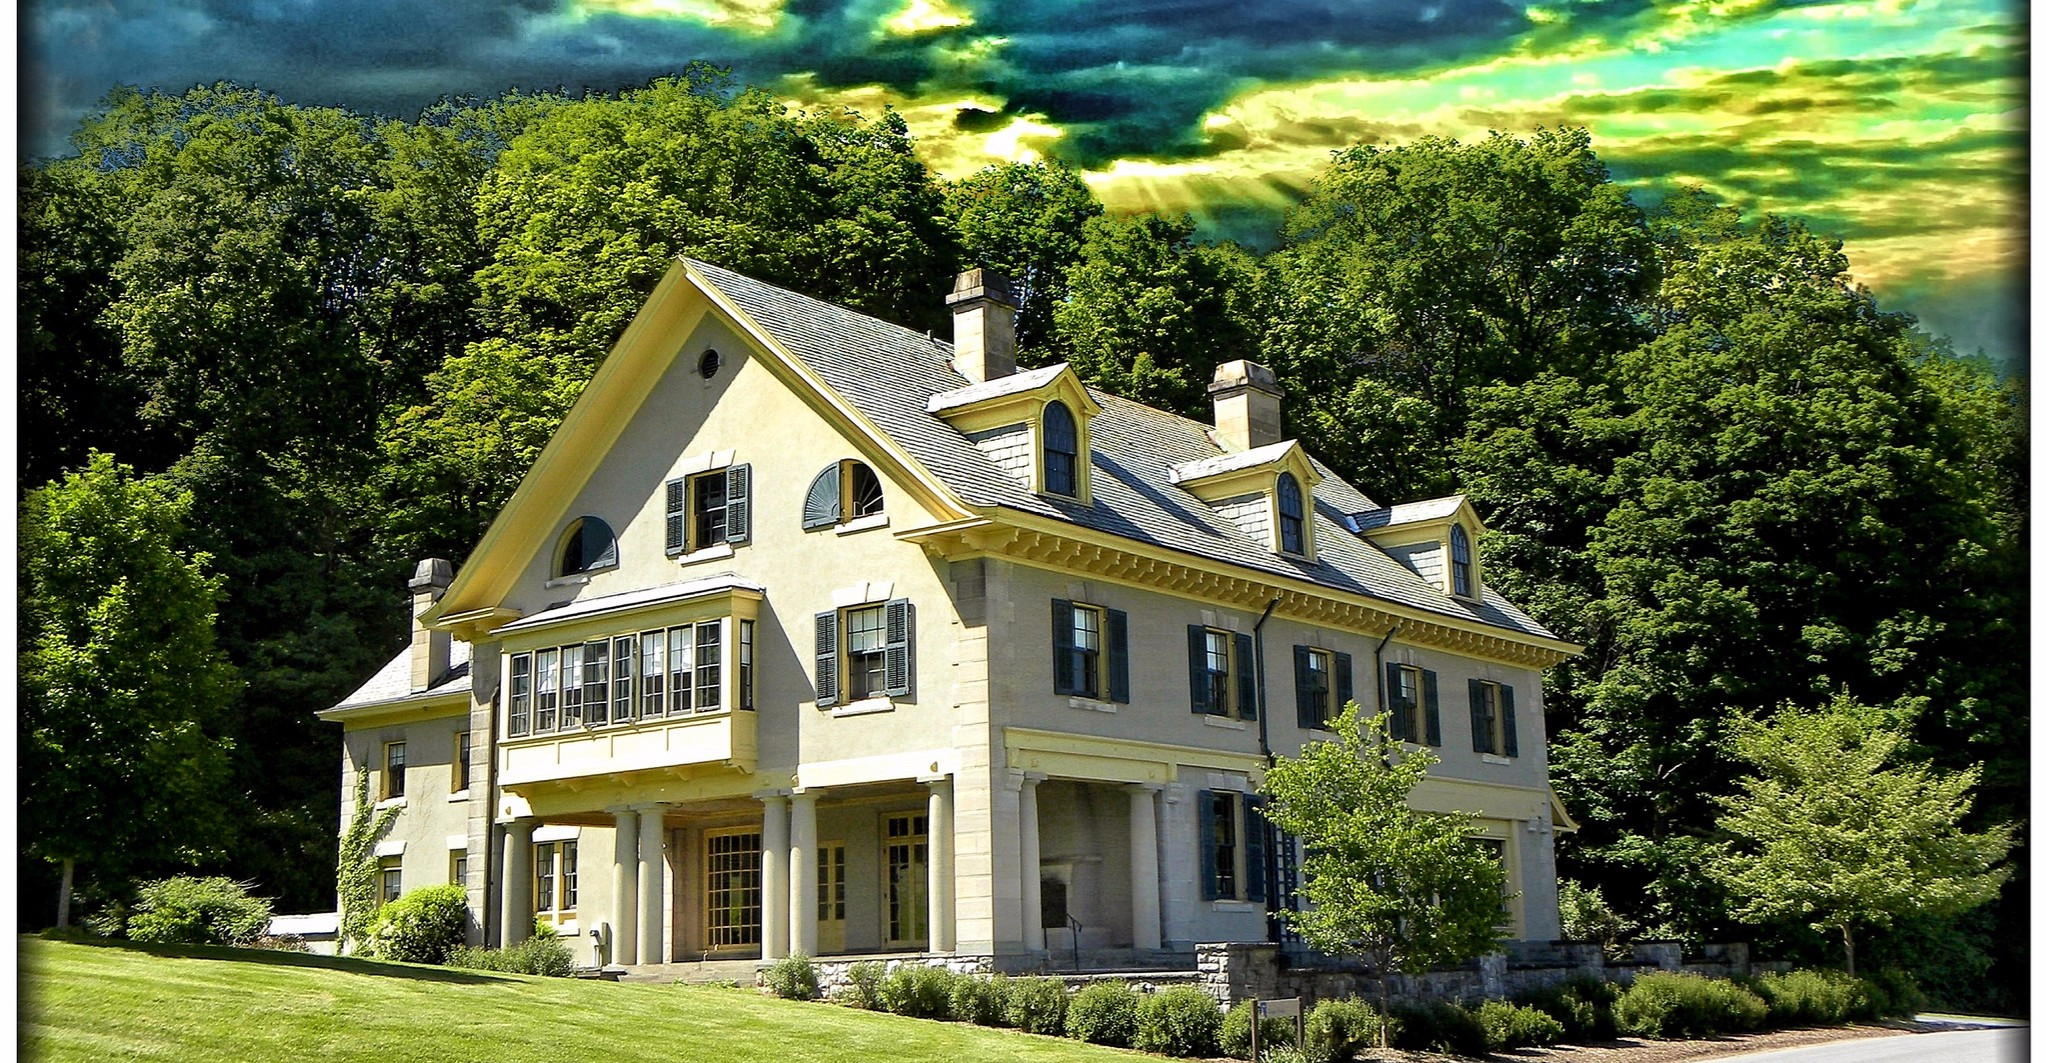 Estate planning - mansion against trees and sky